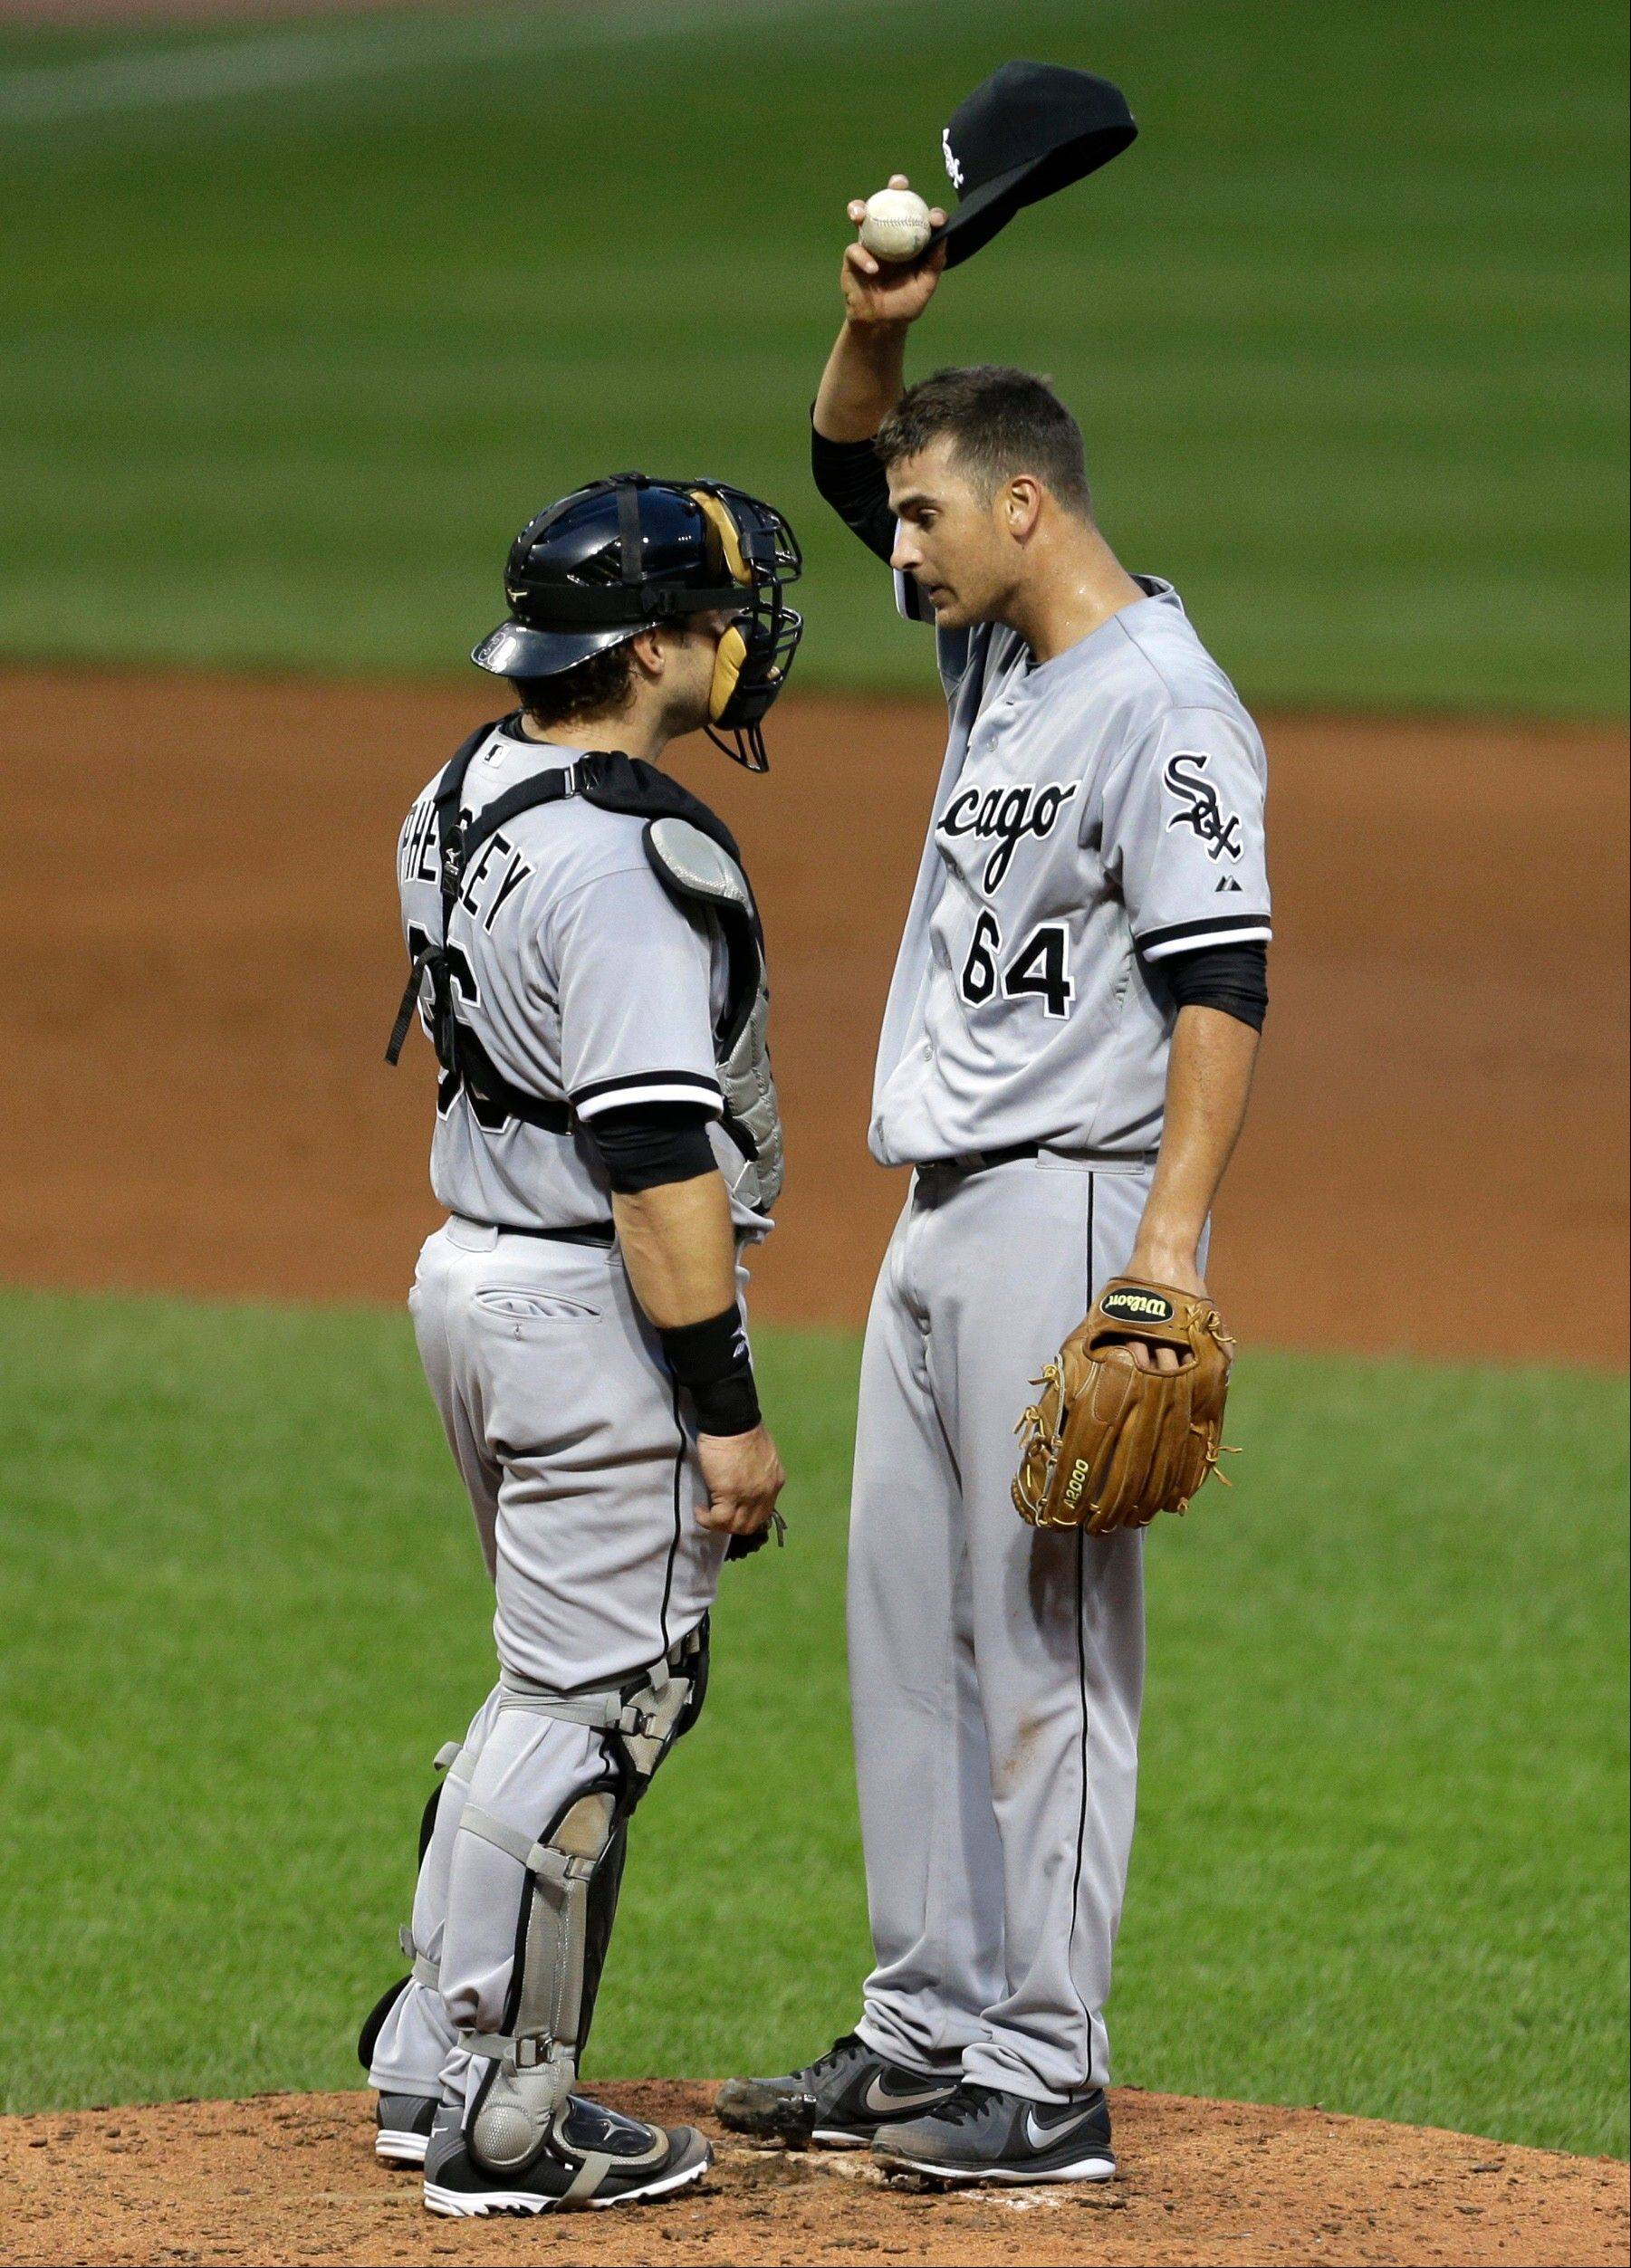 White Sox catcher Josh Phegley talks with starter Andre Rienzo during a recent game in Cleveland.